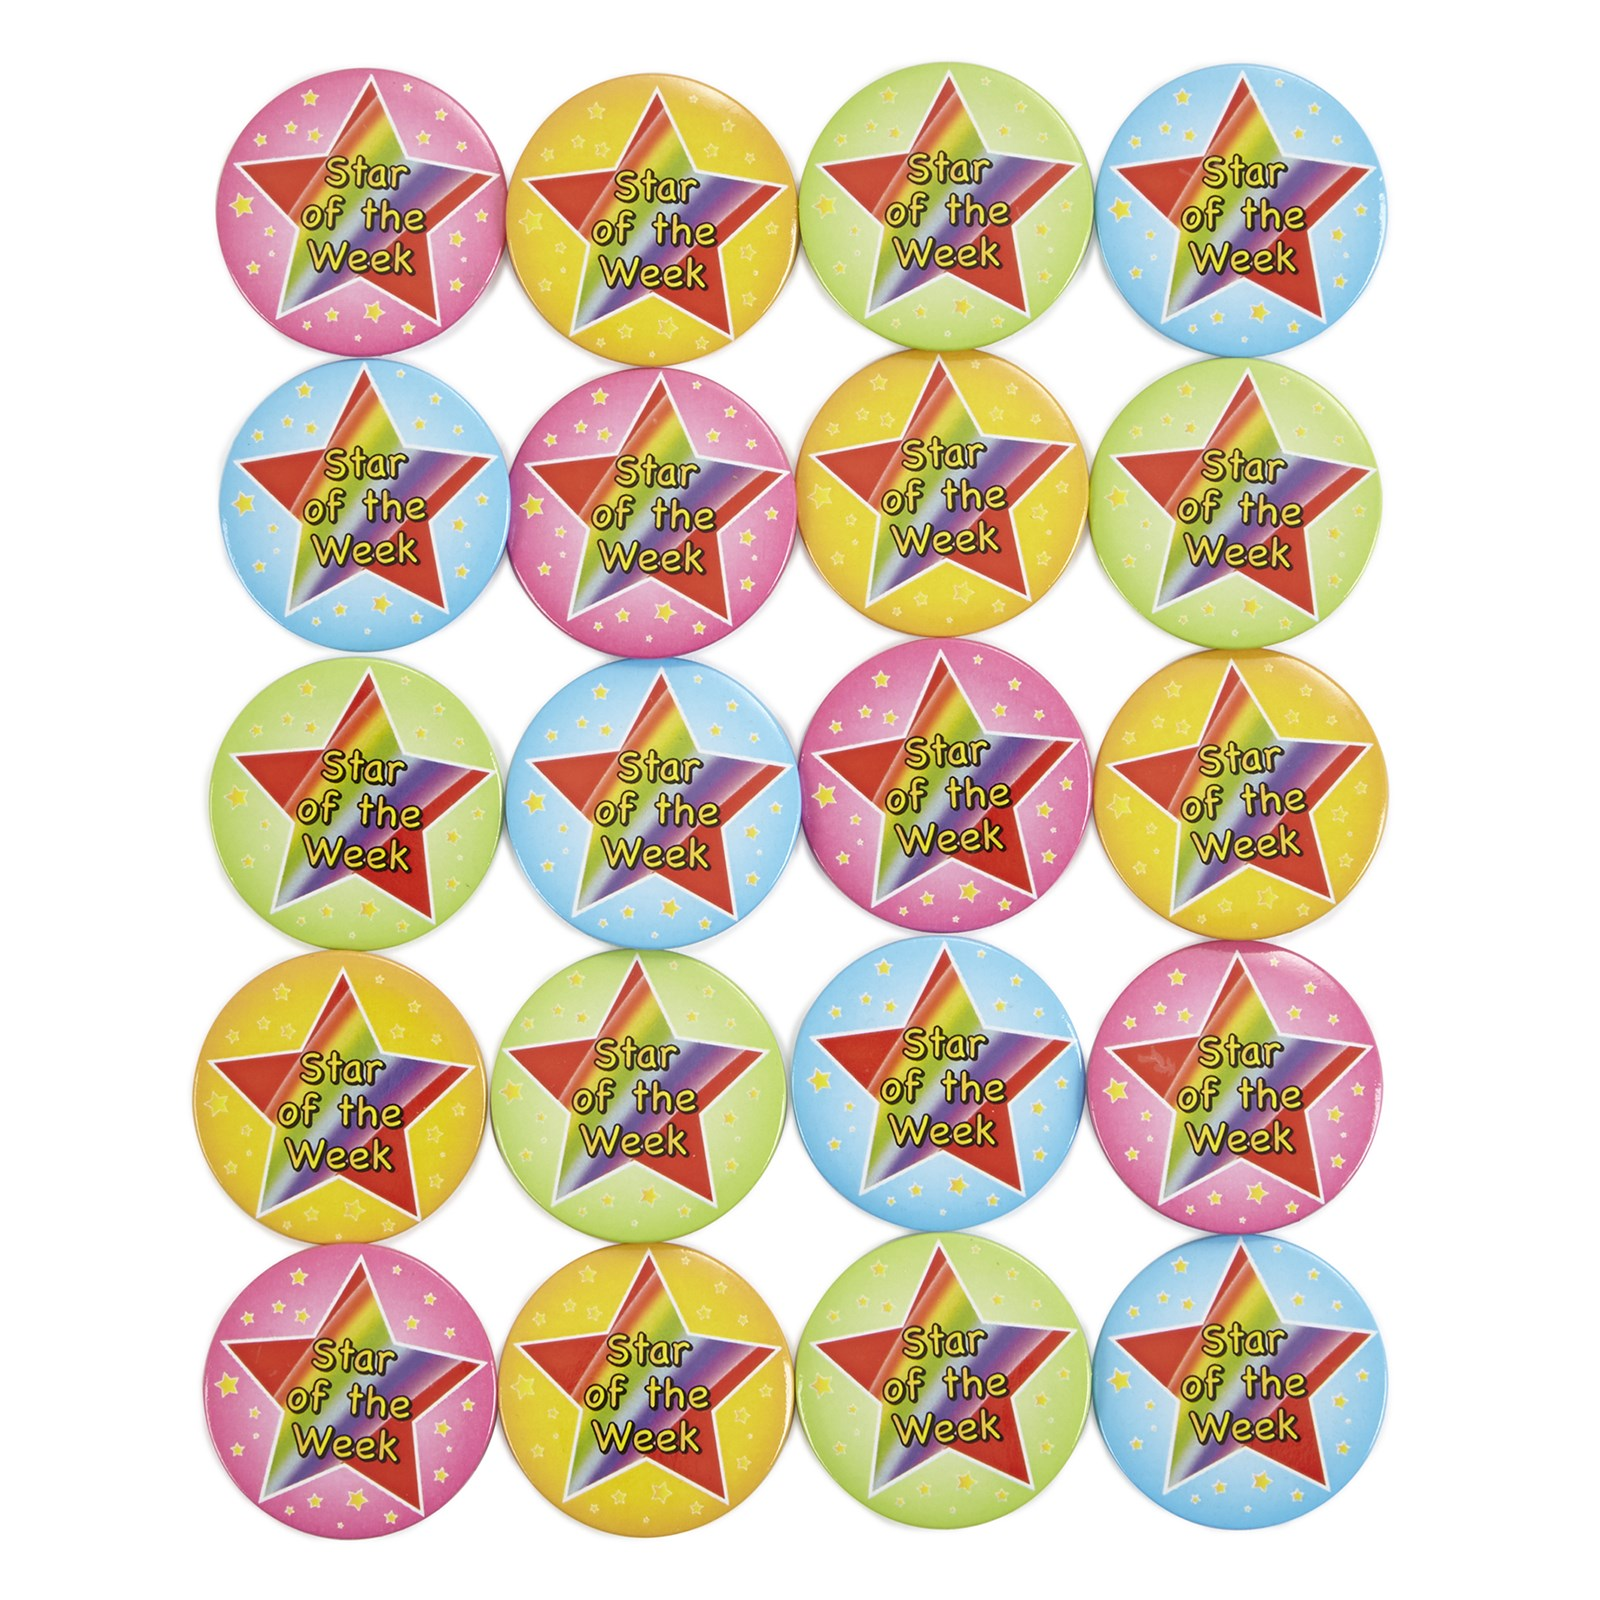 Star of the Week Badges - Pack of 20